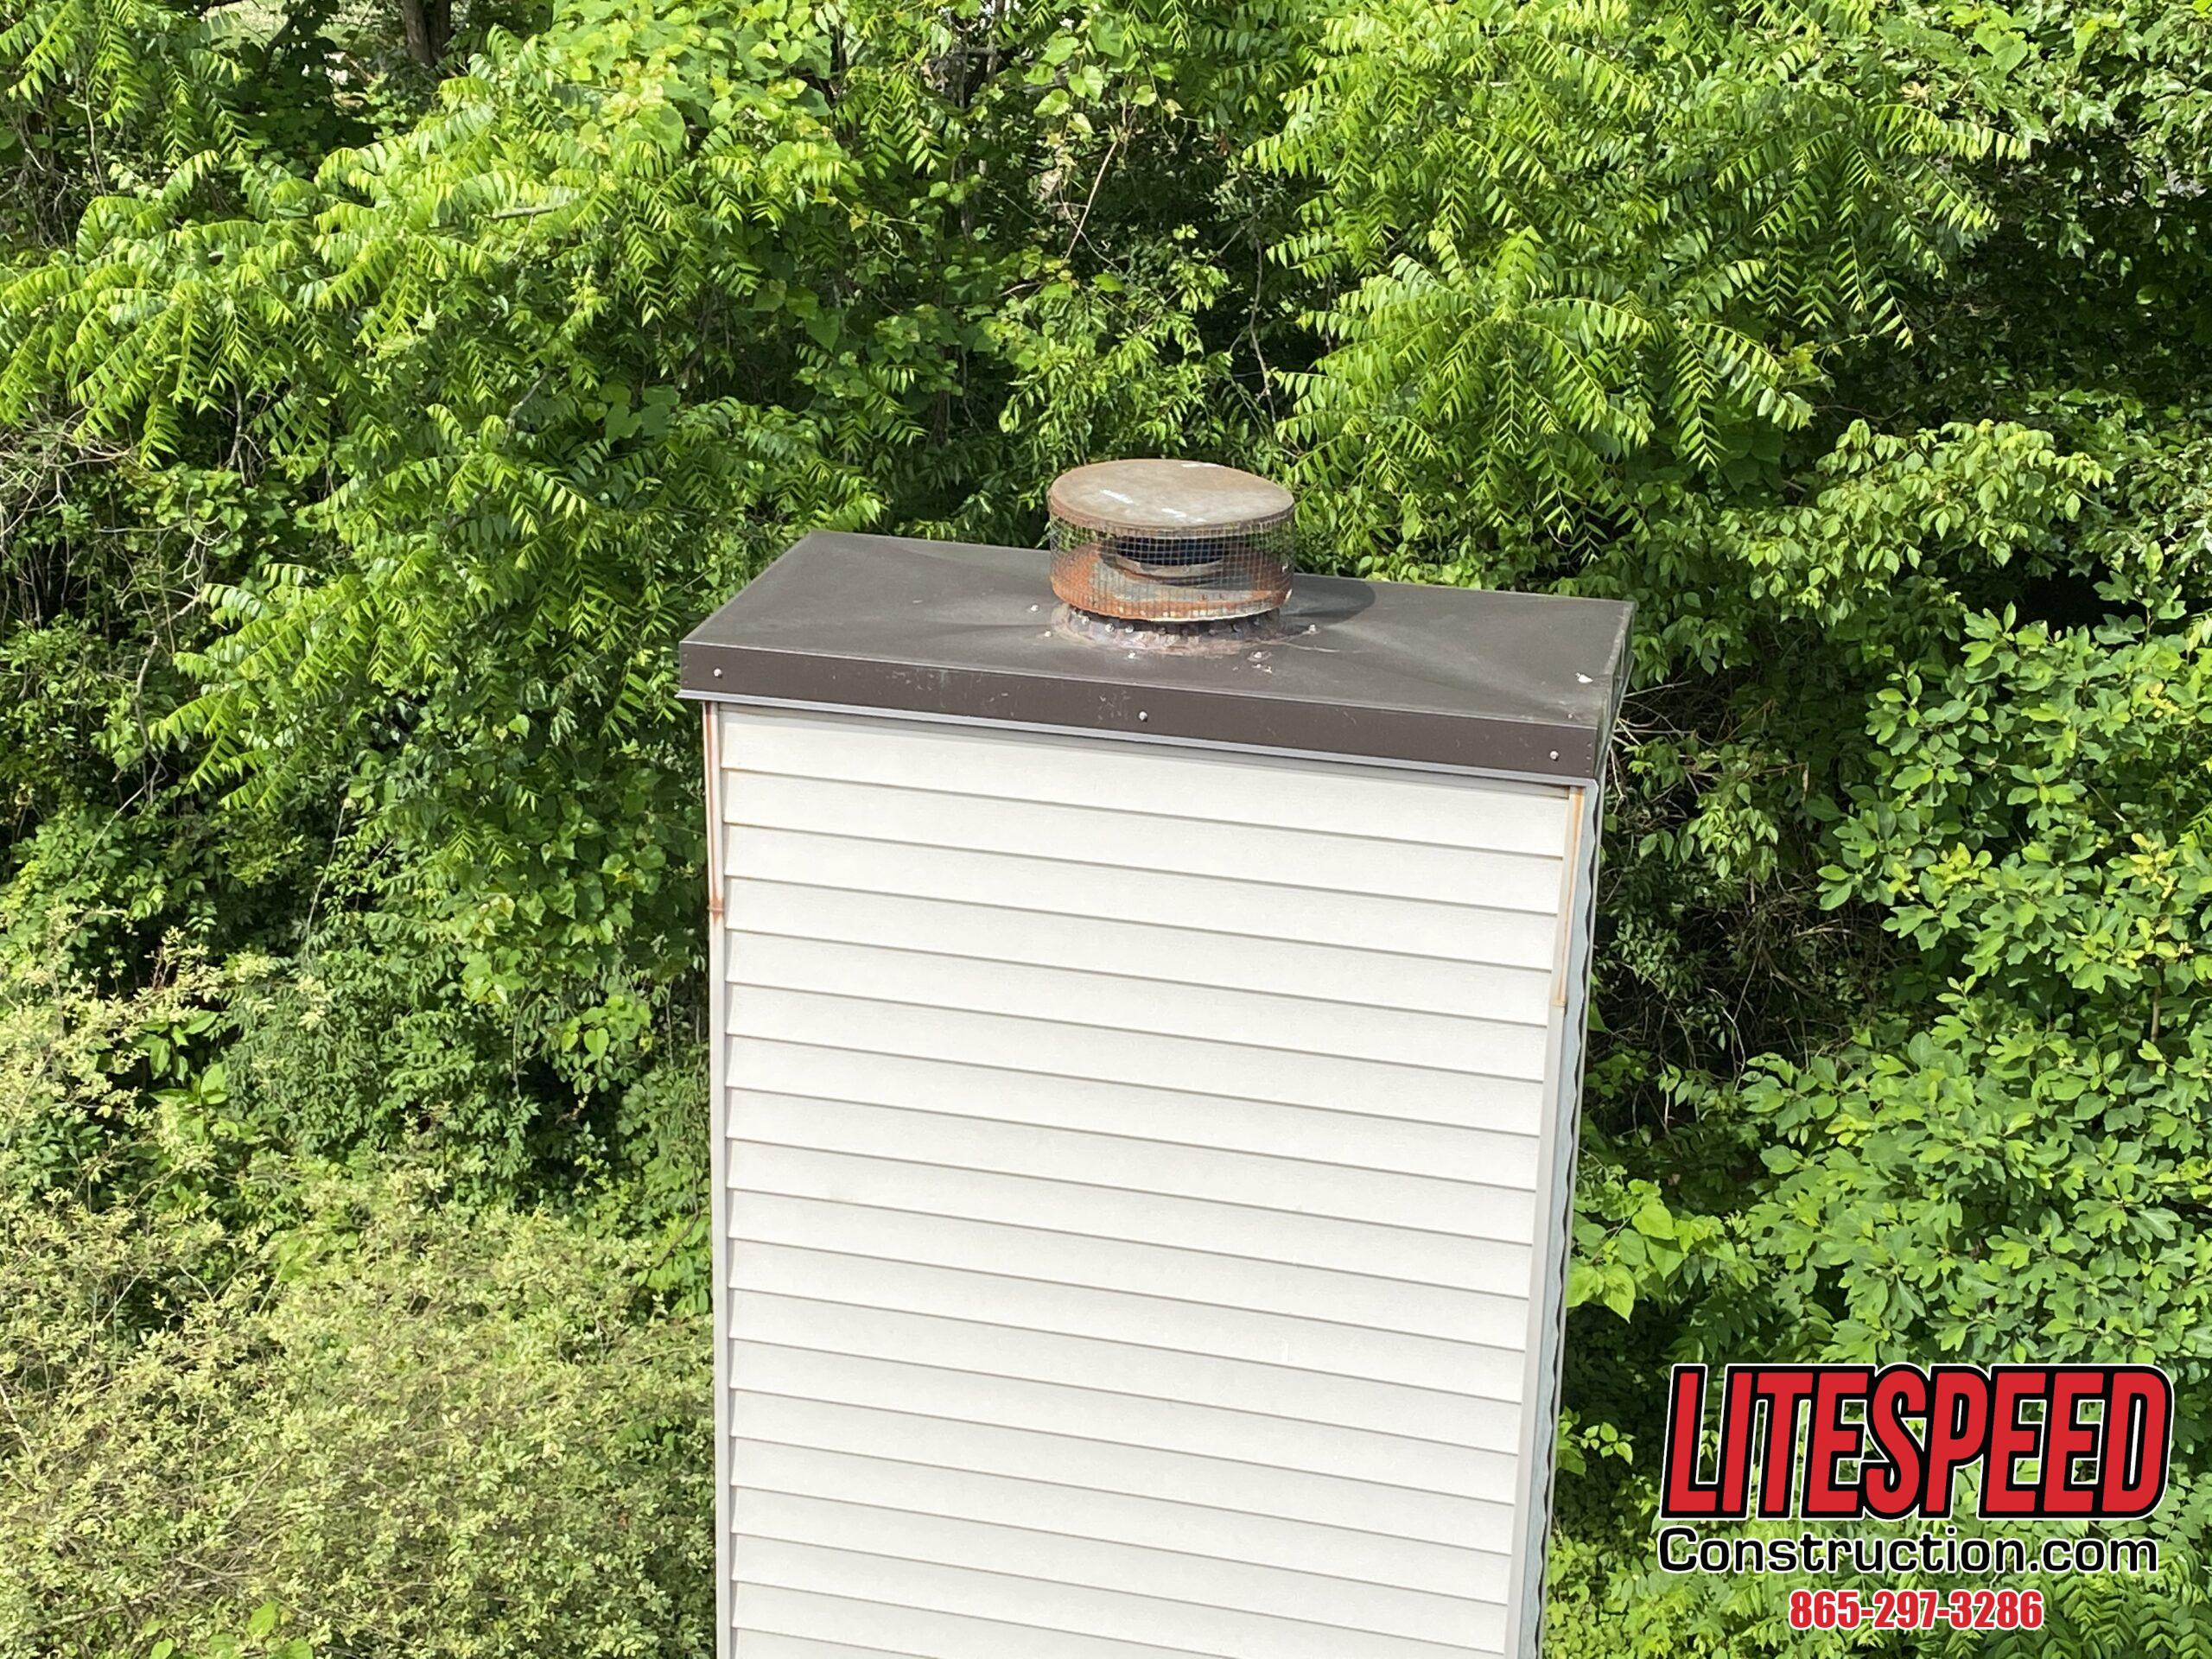 This is a picture of a brand new chimney cap on a steep roof